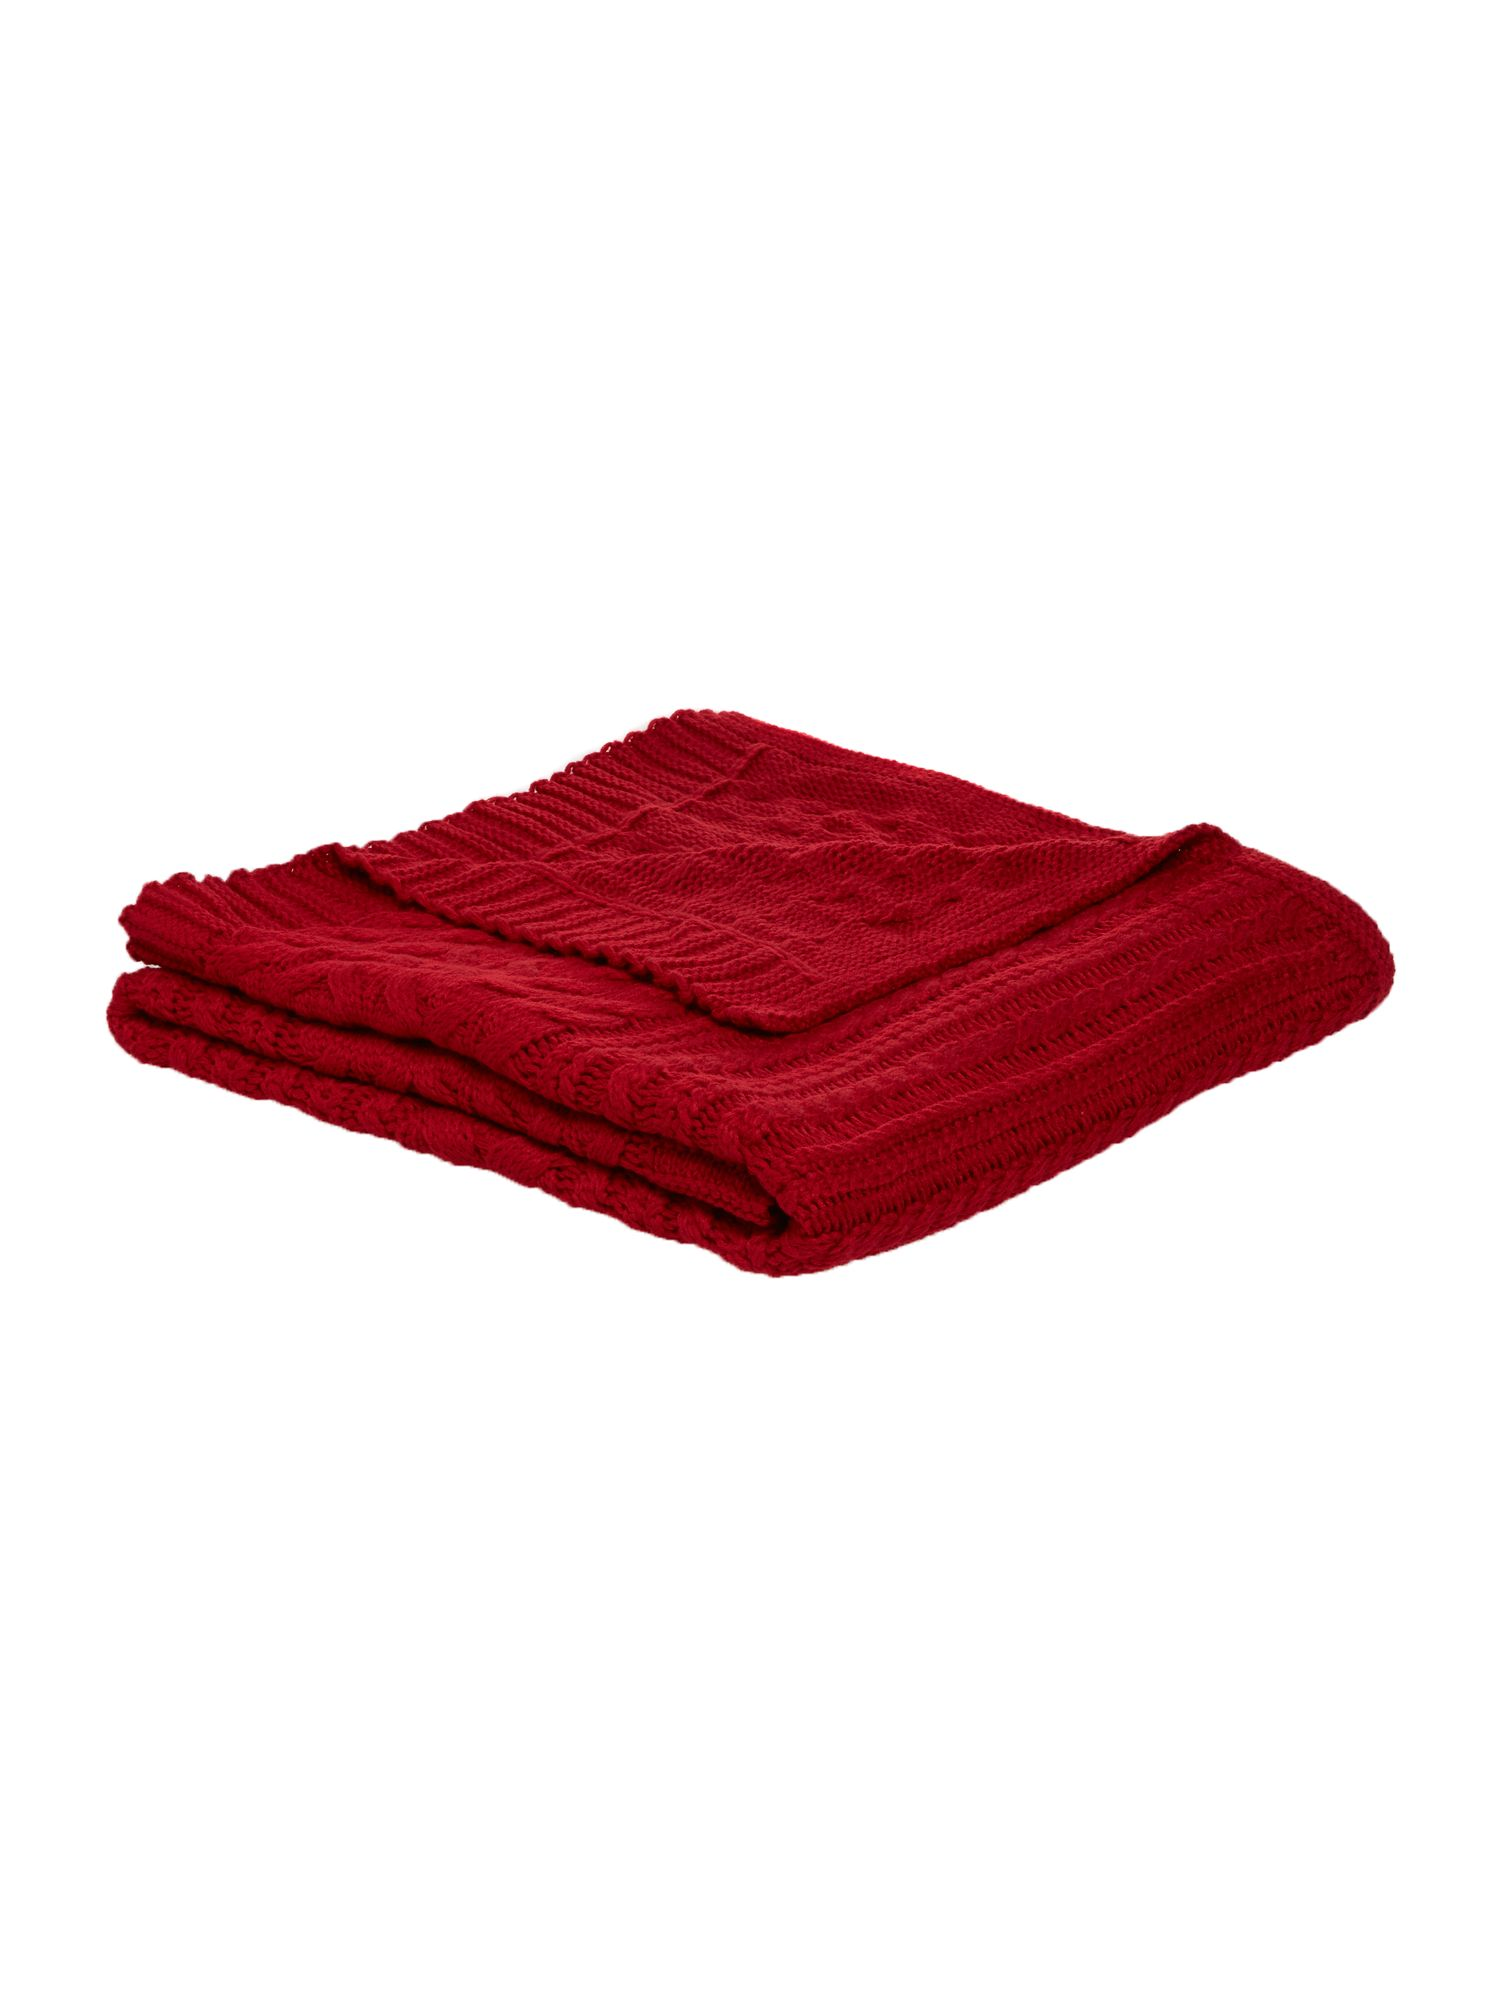 Linea Linea Chunky cable knit blanket, red